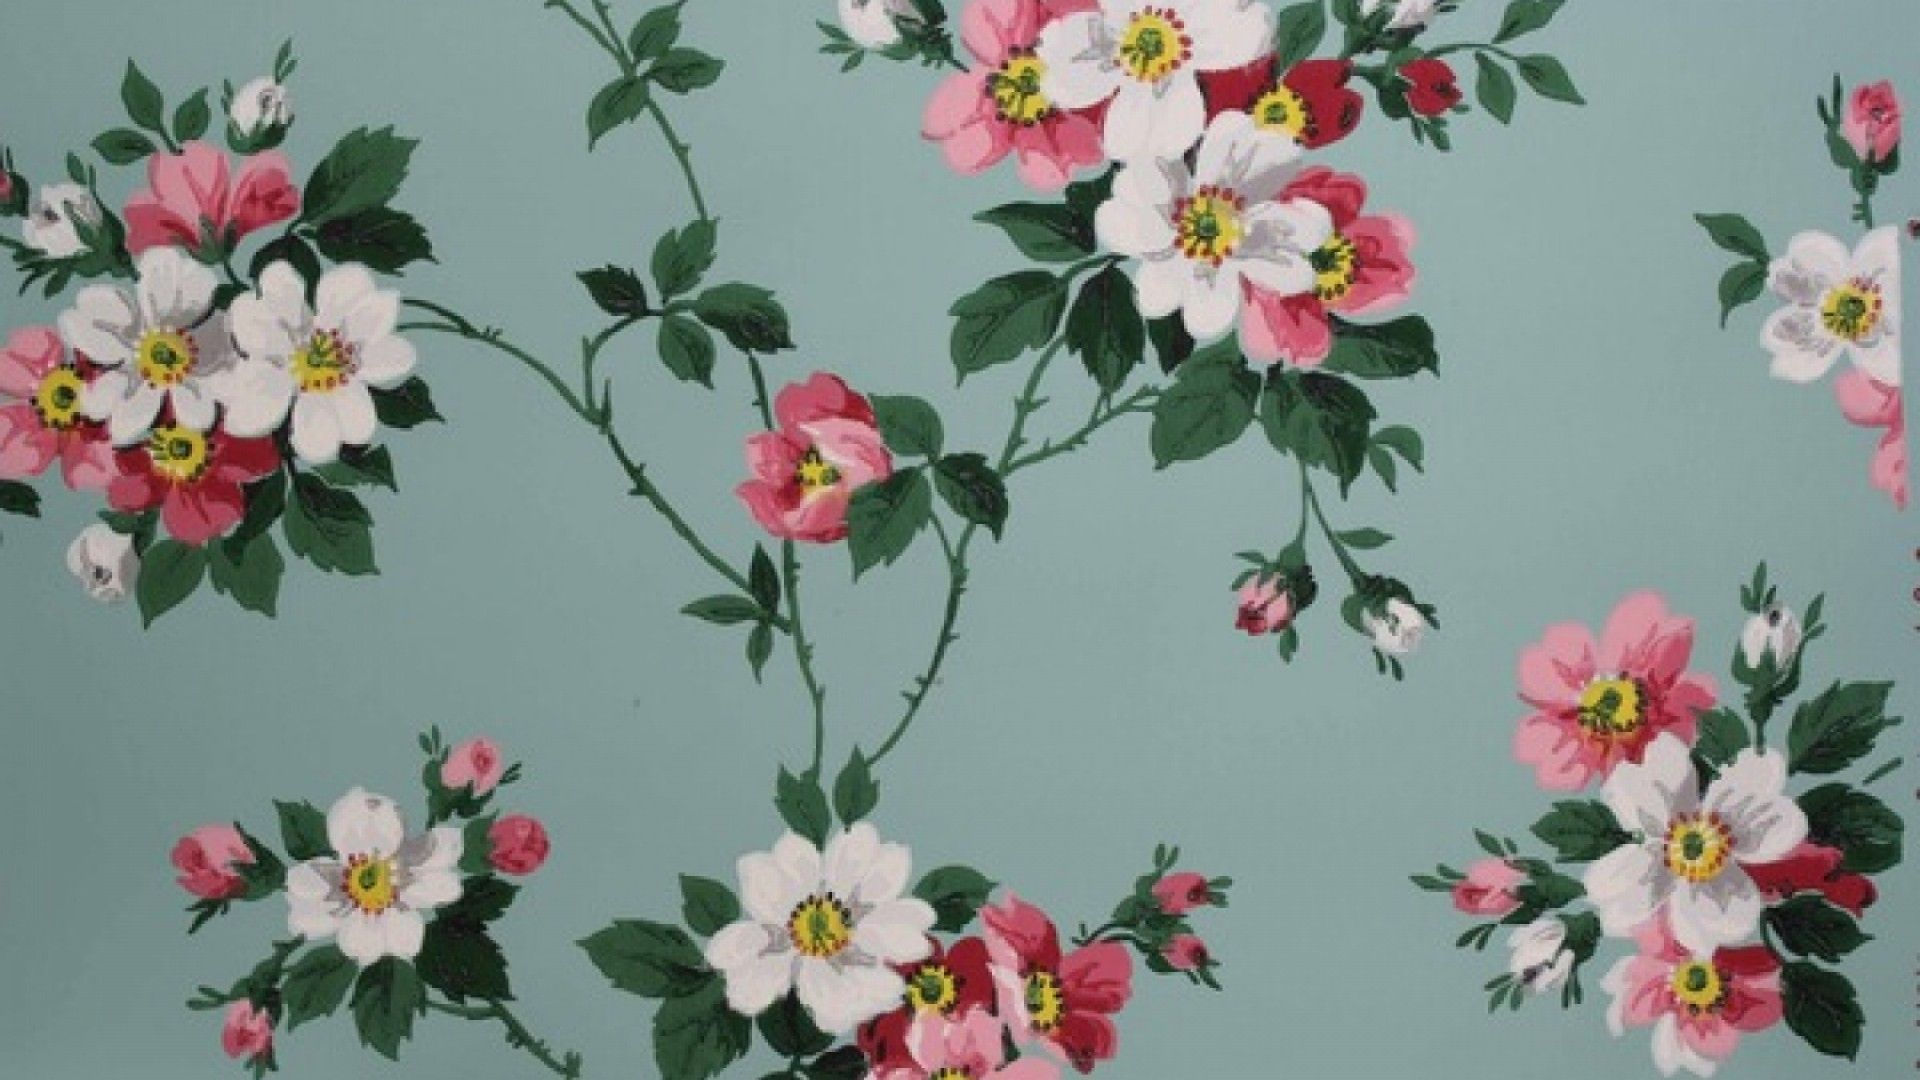 Collection Of Vintage Flowers Backgrounds Vintage Flower Vintage Wallpaper Desktop 1920x1080 Wallpaper Teahub Io